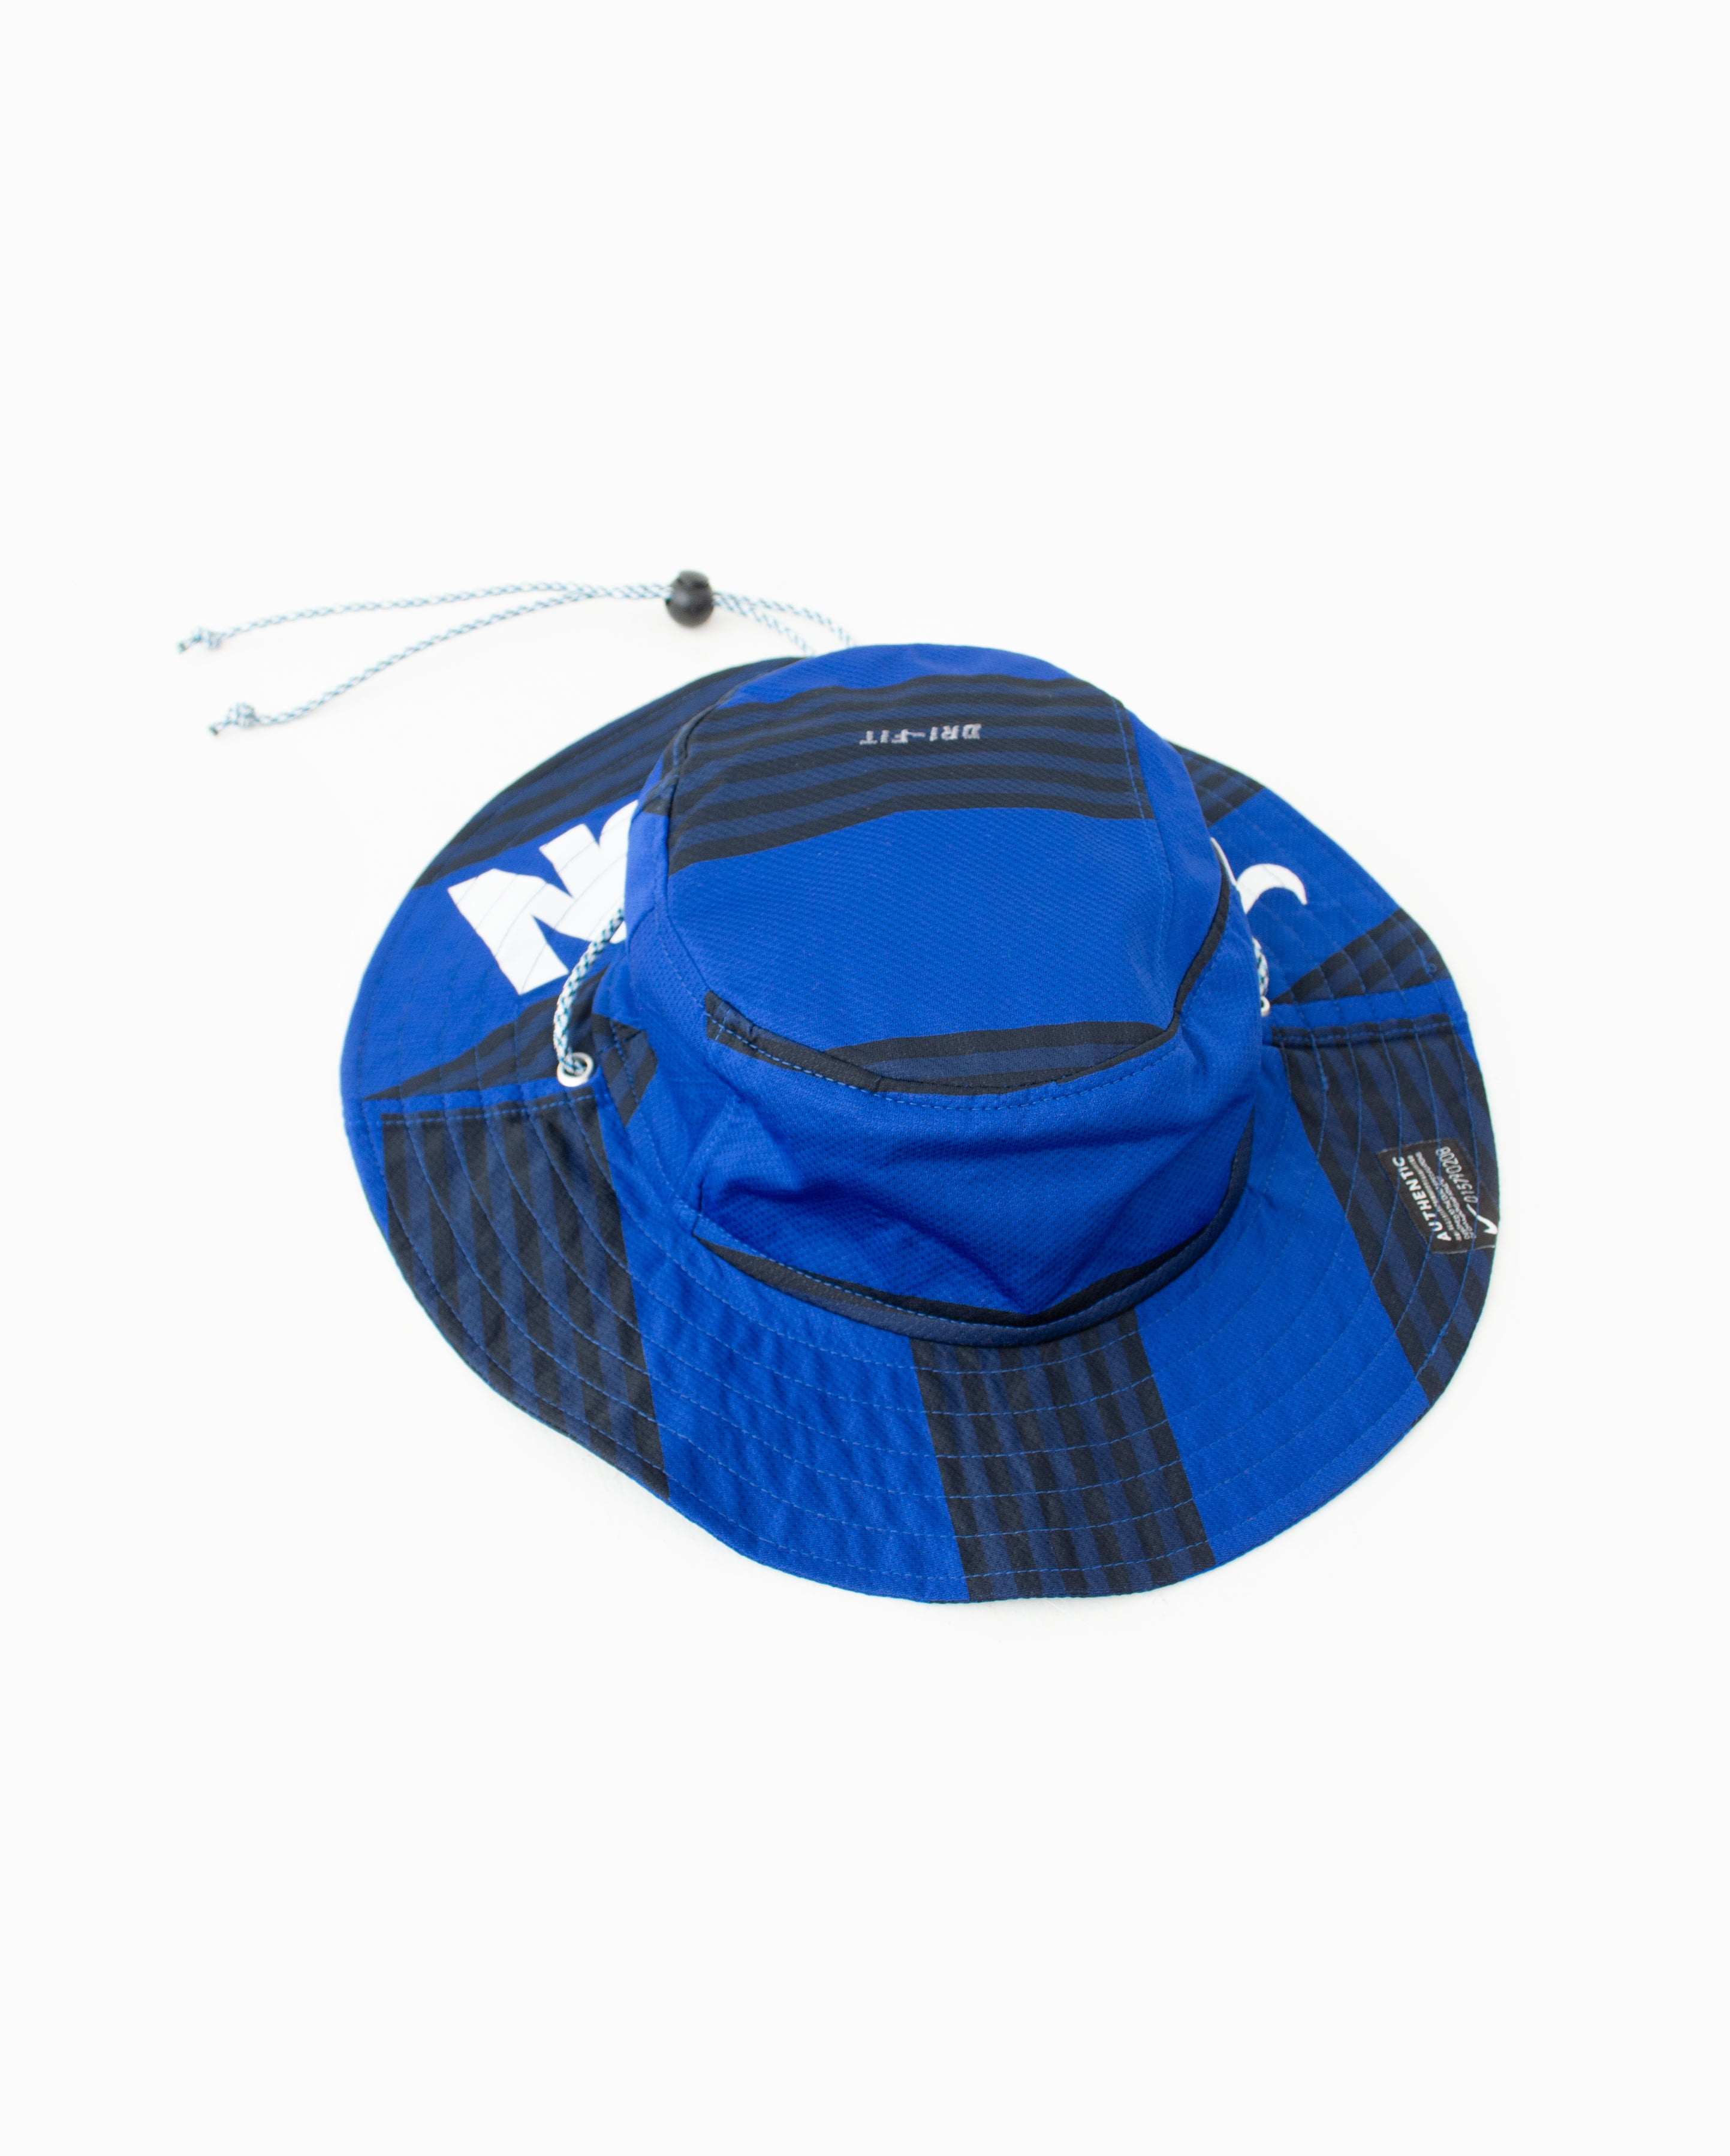 Germany Reworked Bucket Hat #20